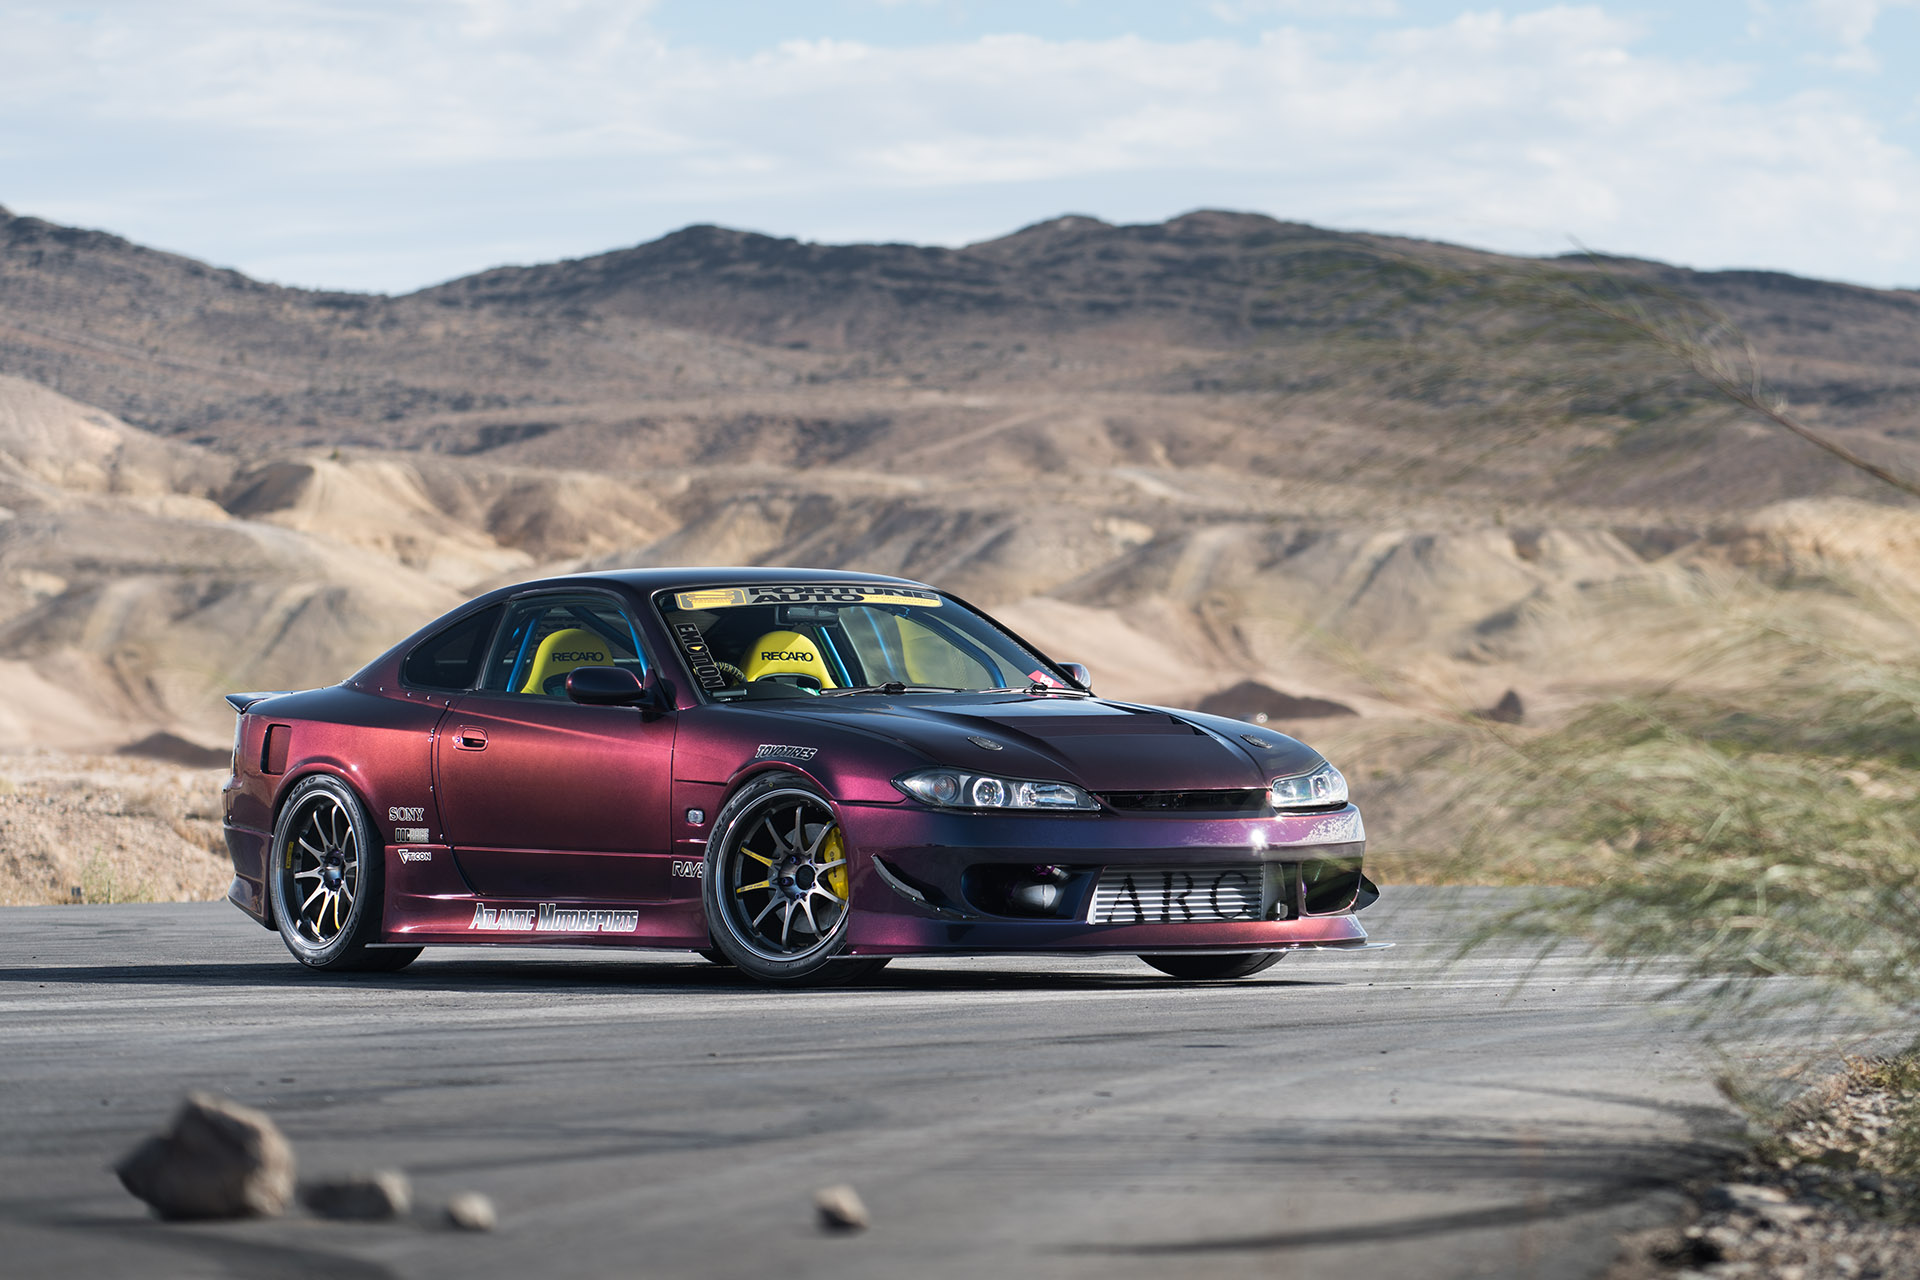 Luke Munnell automotive photography RB26DETT swapped Midnight Purple III Nissan S15 Silvia front shot for Super Street magazine